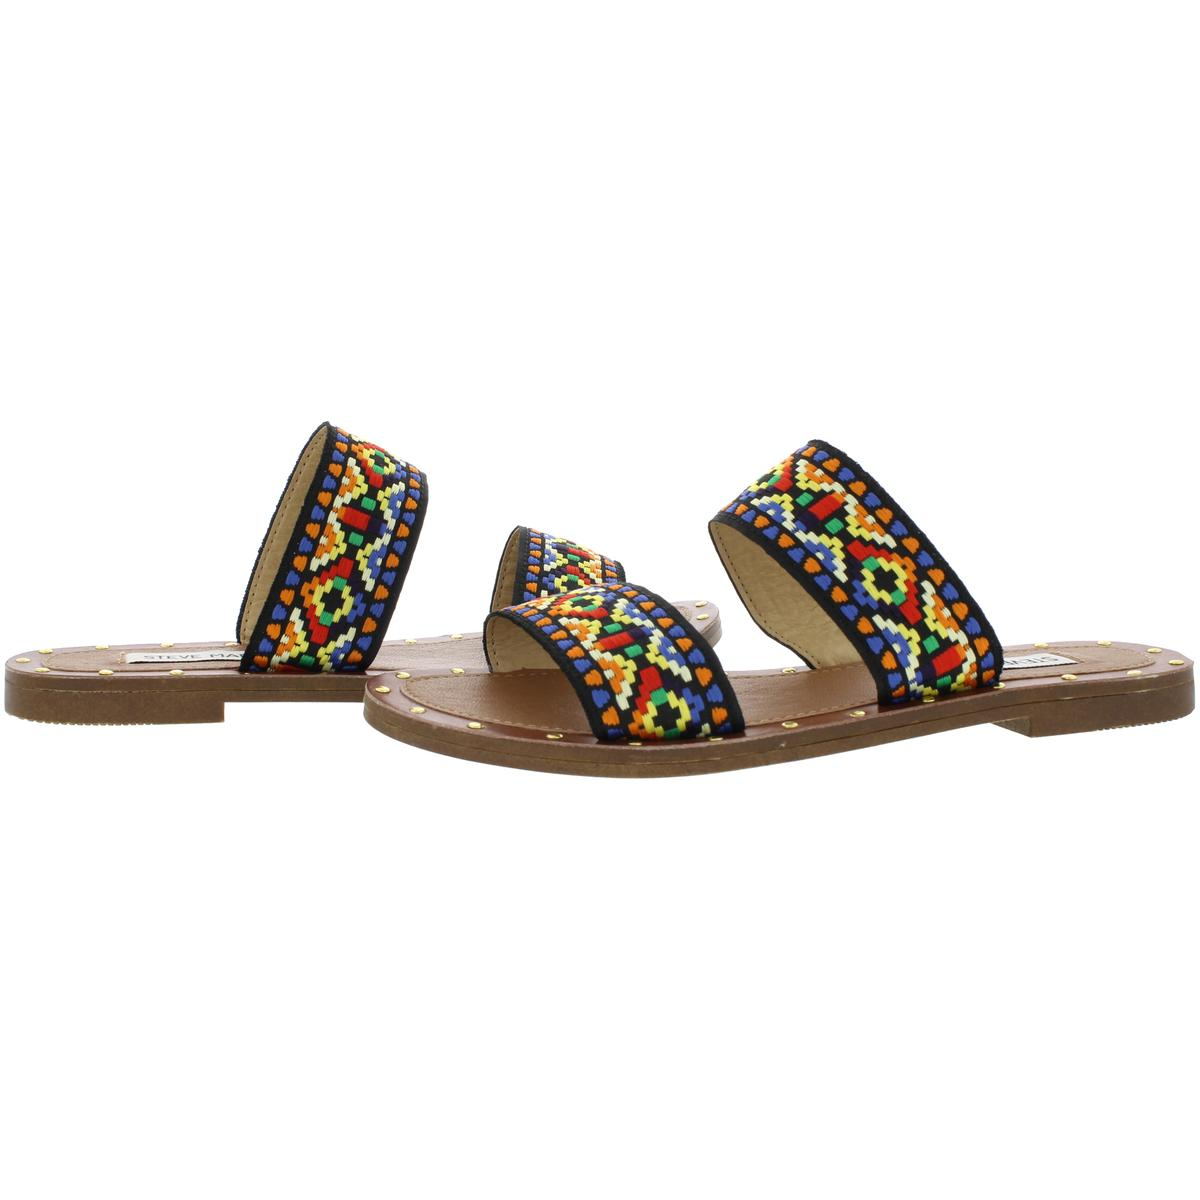 2270f8a826f Details about Steve Madden Womens Marcia Tribal Double Strap Flat Sandals  Shoes BHFO 8168